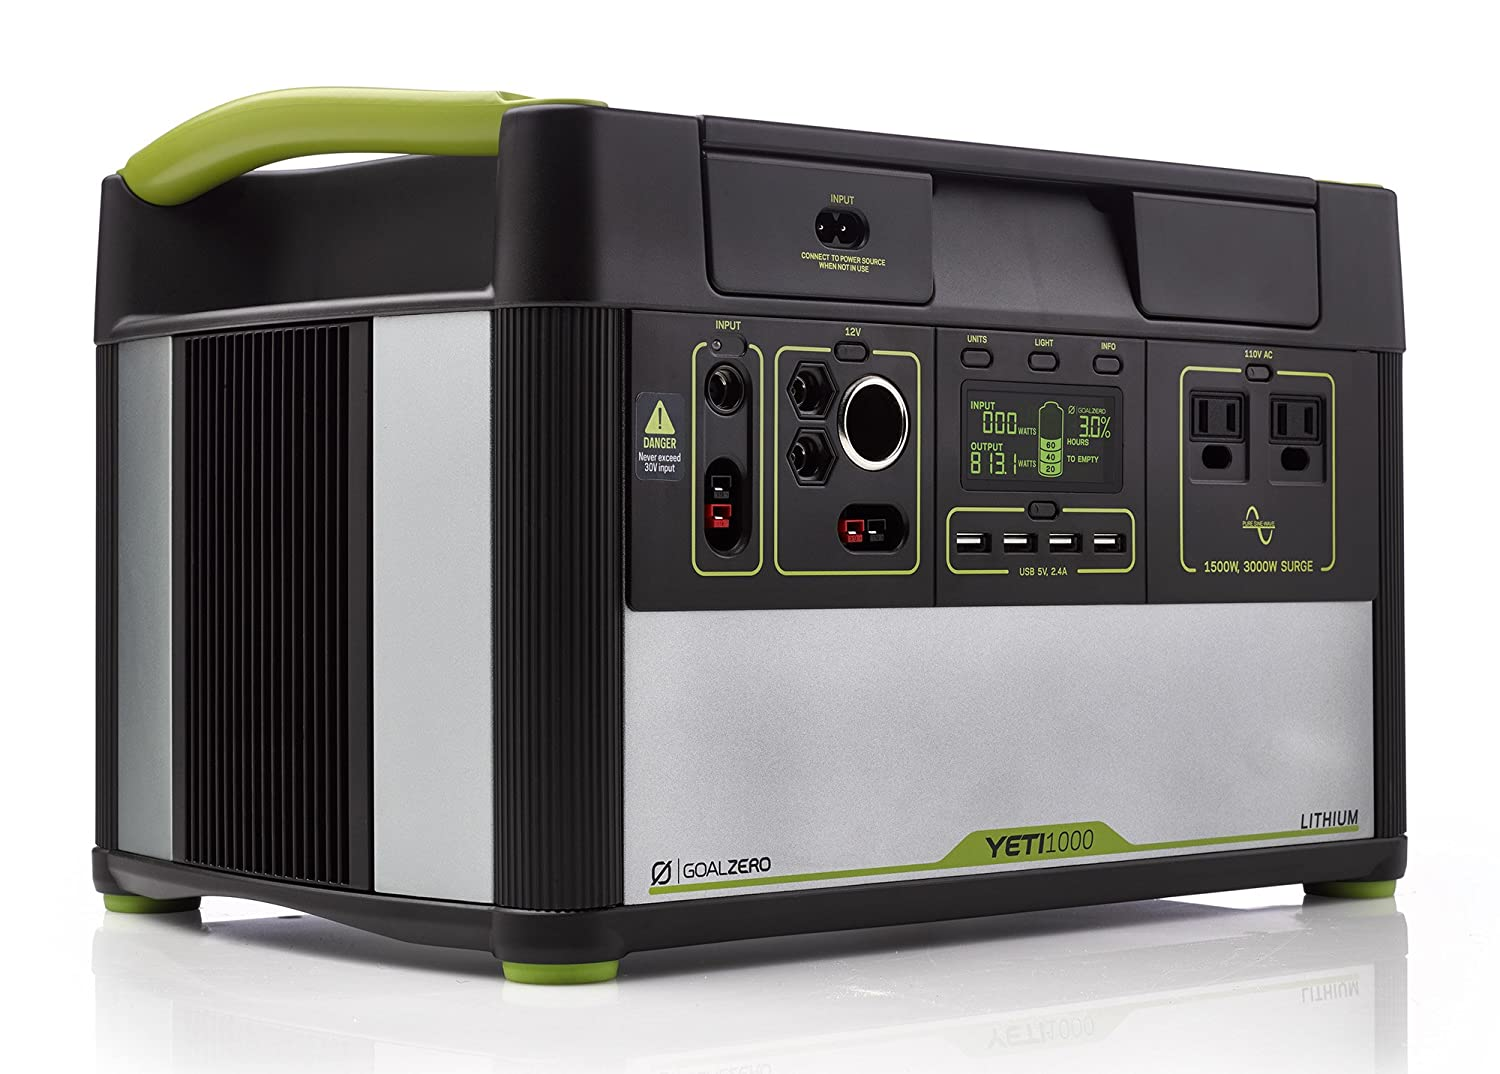 Goal Zero Yeti 1000 Lithium Portable Power Station, 1045Wh Silent Gas Free  Generator Alternative with 1500W (3000W Surge) Inverter, 12V and USB Outputs abaf584798